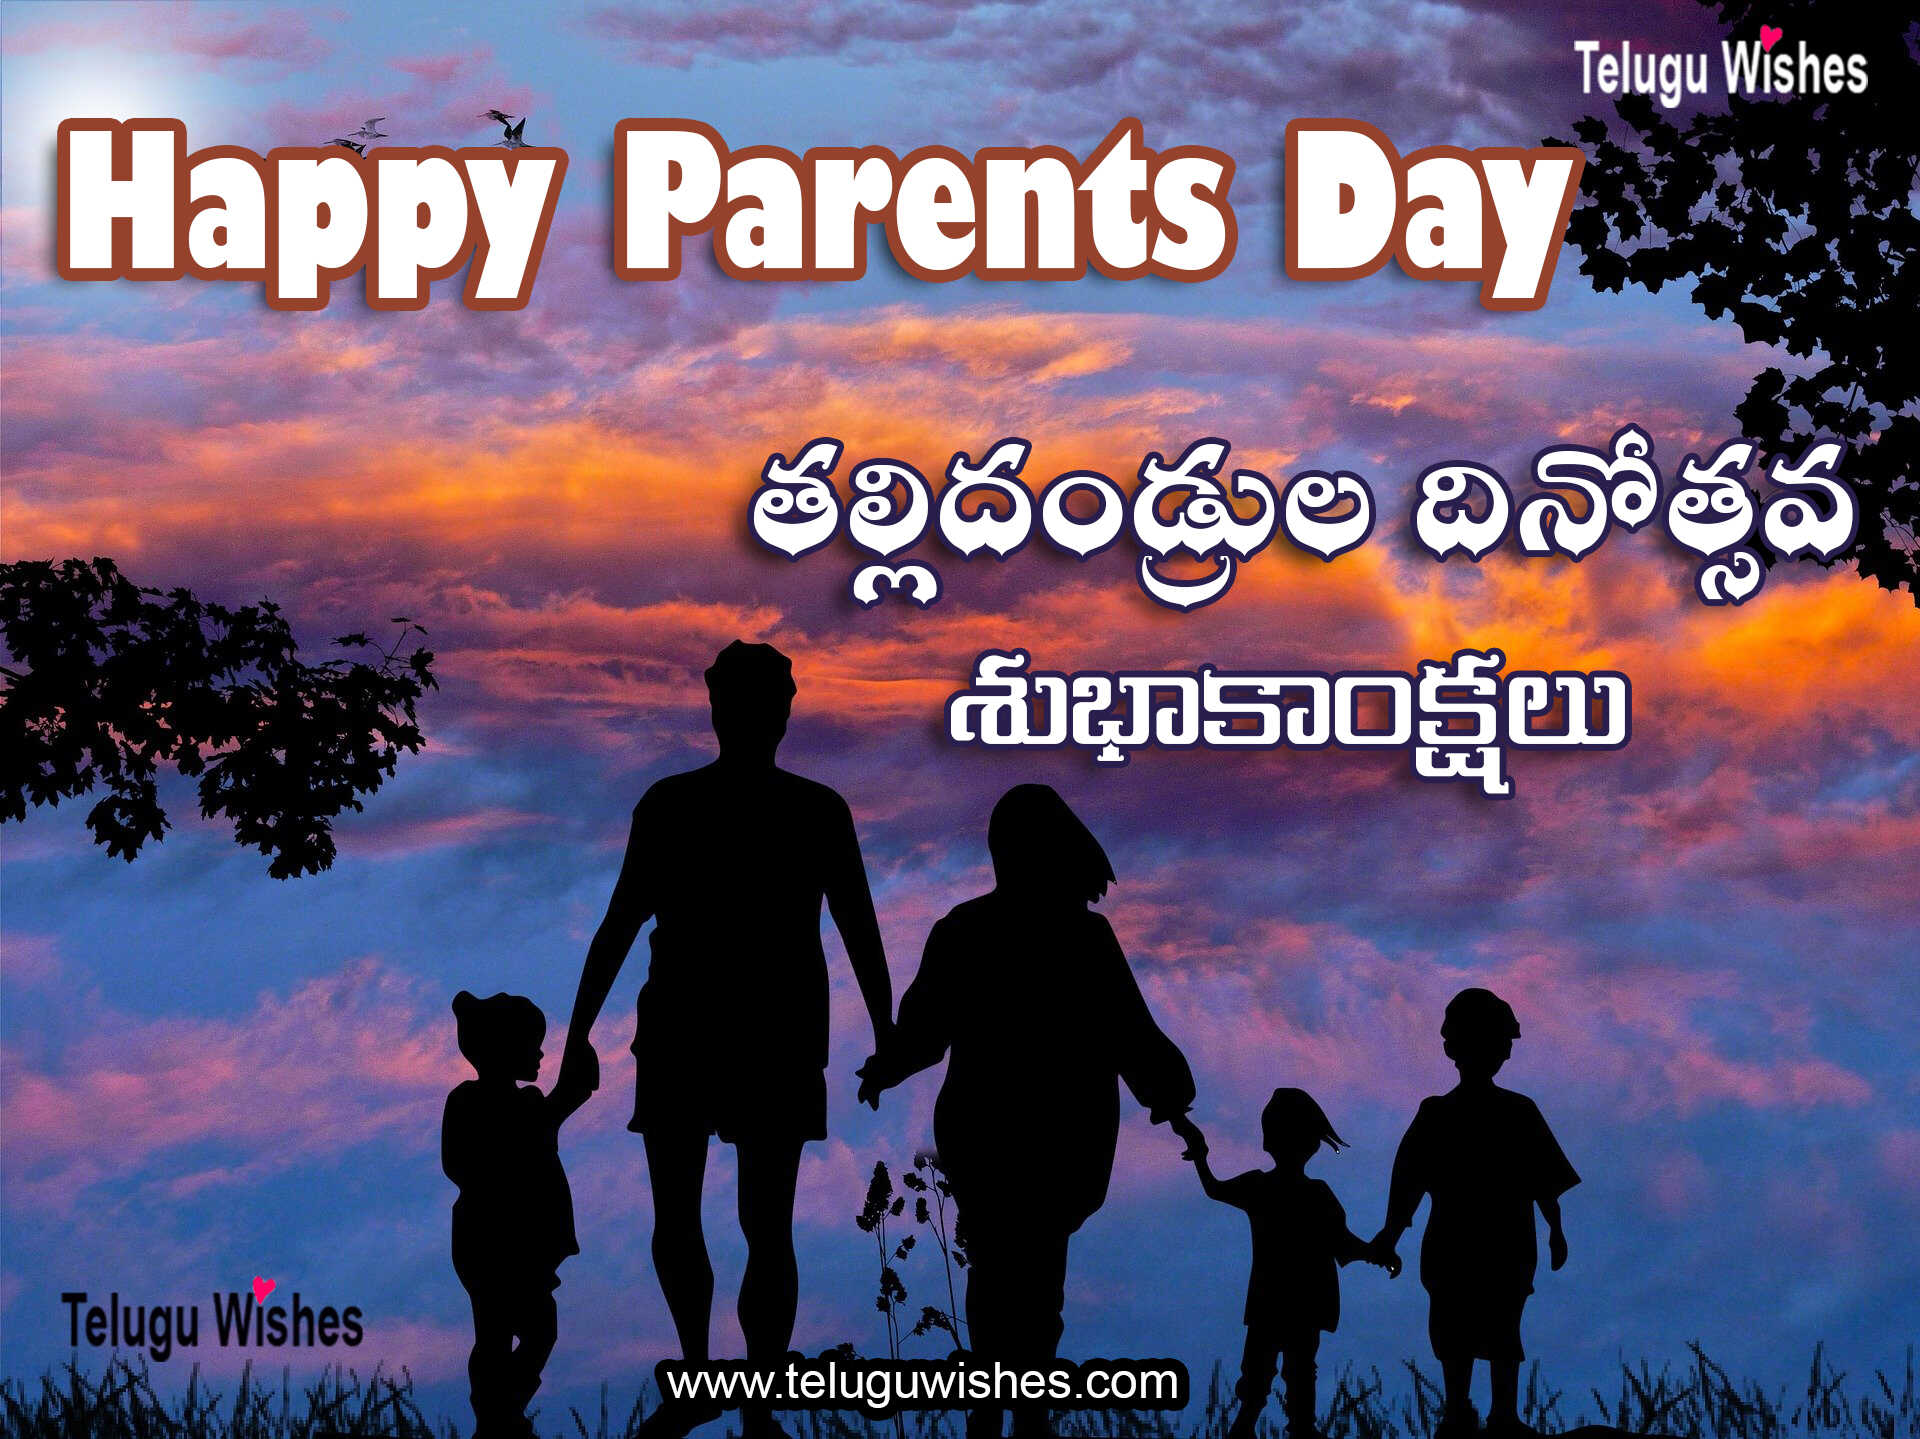 Happy Parients Day wishes images in Telugu